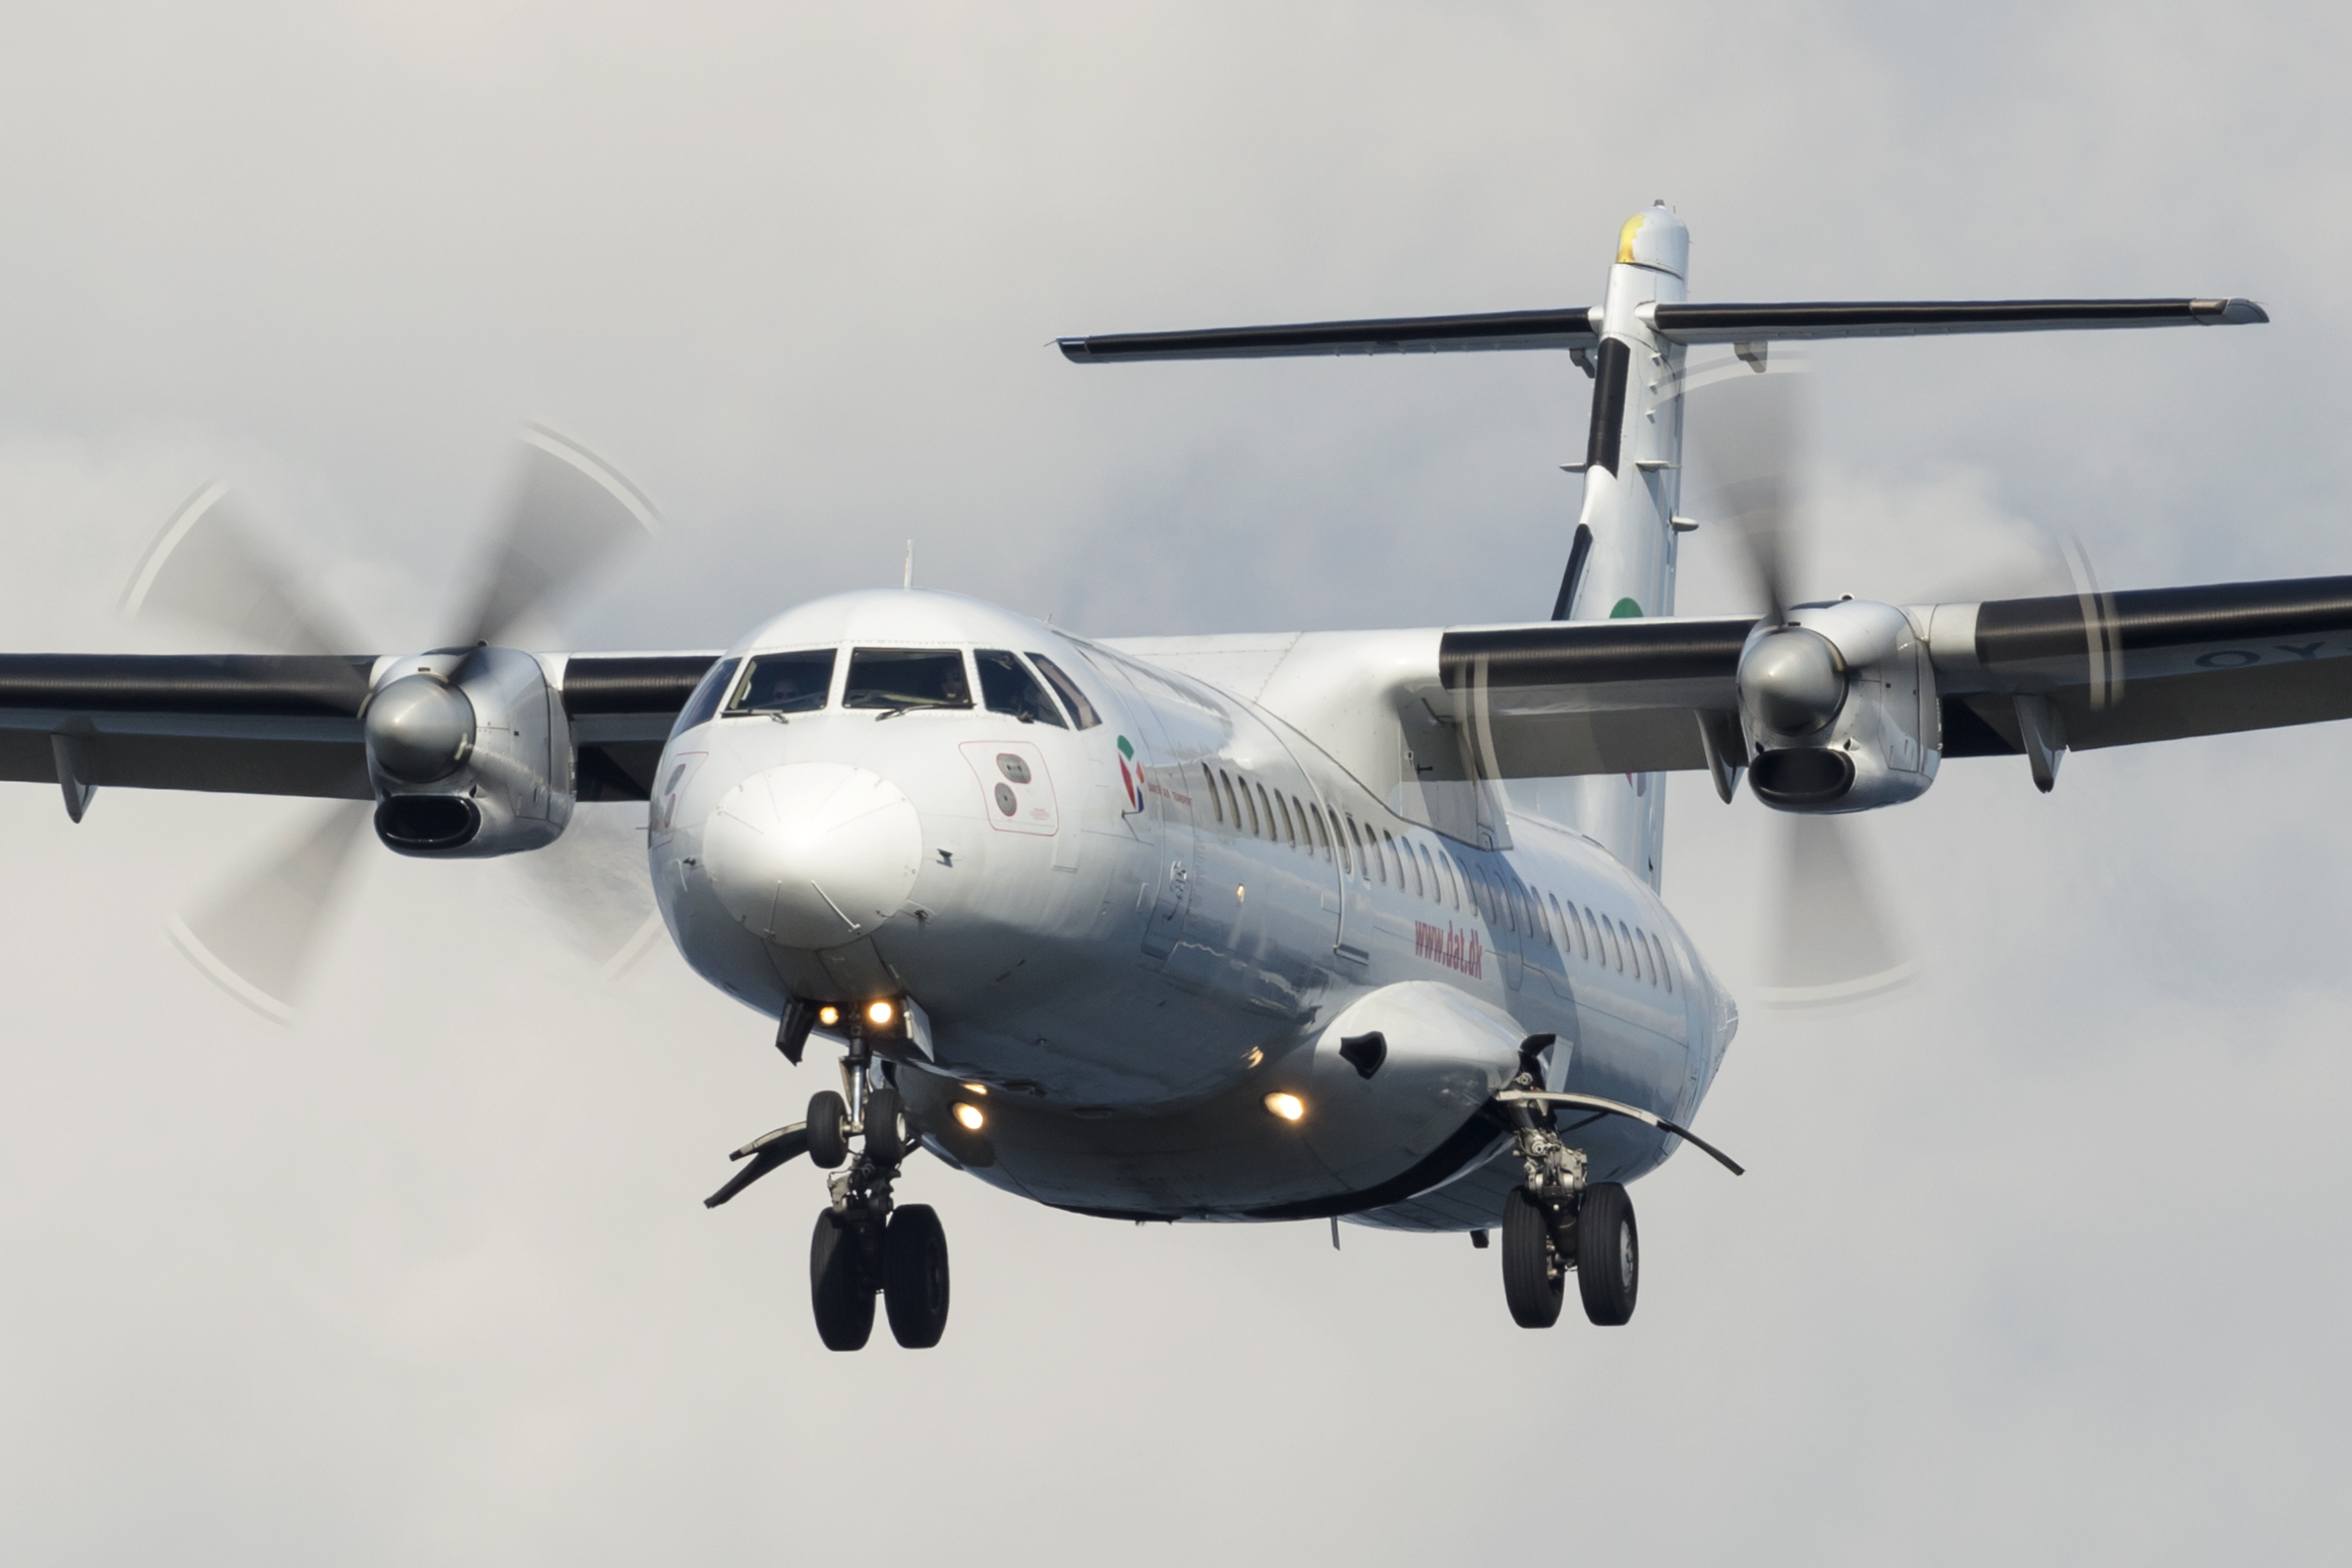 ATR 72 fra DAT. Foto: © Thorbjørn Brunander Sund, Danish Aviation Photo)